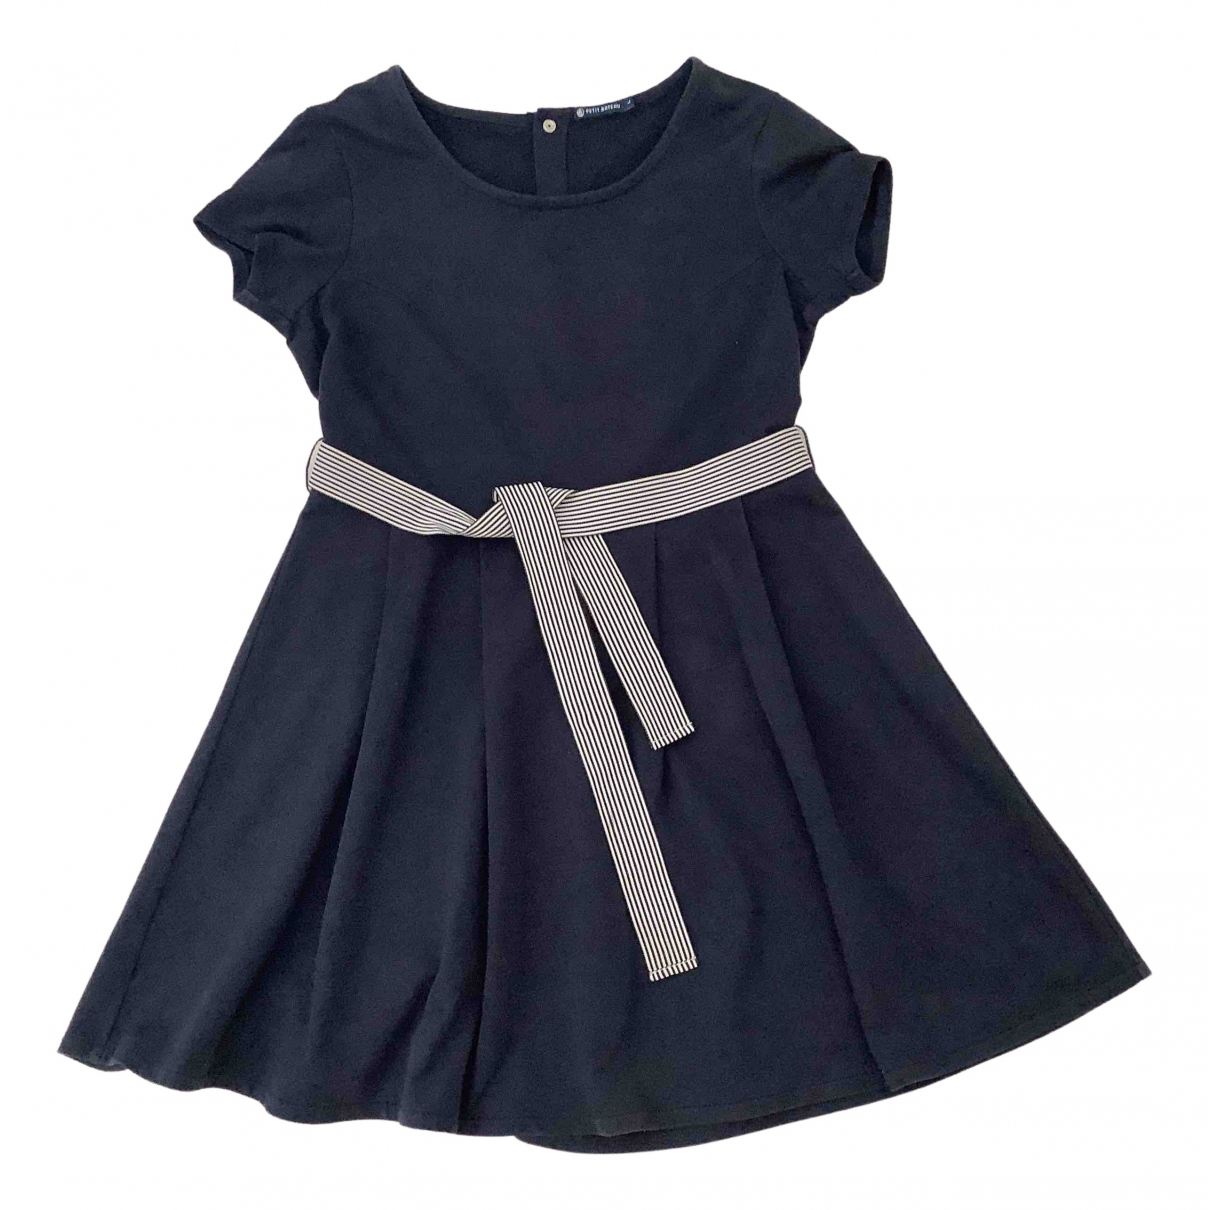 Petit Bateau \N Blue Cotton dress for Women L International